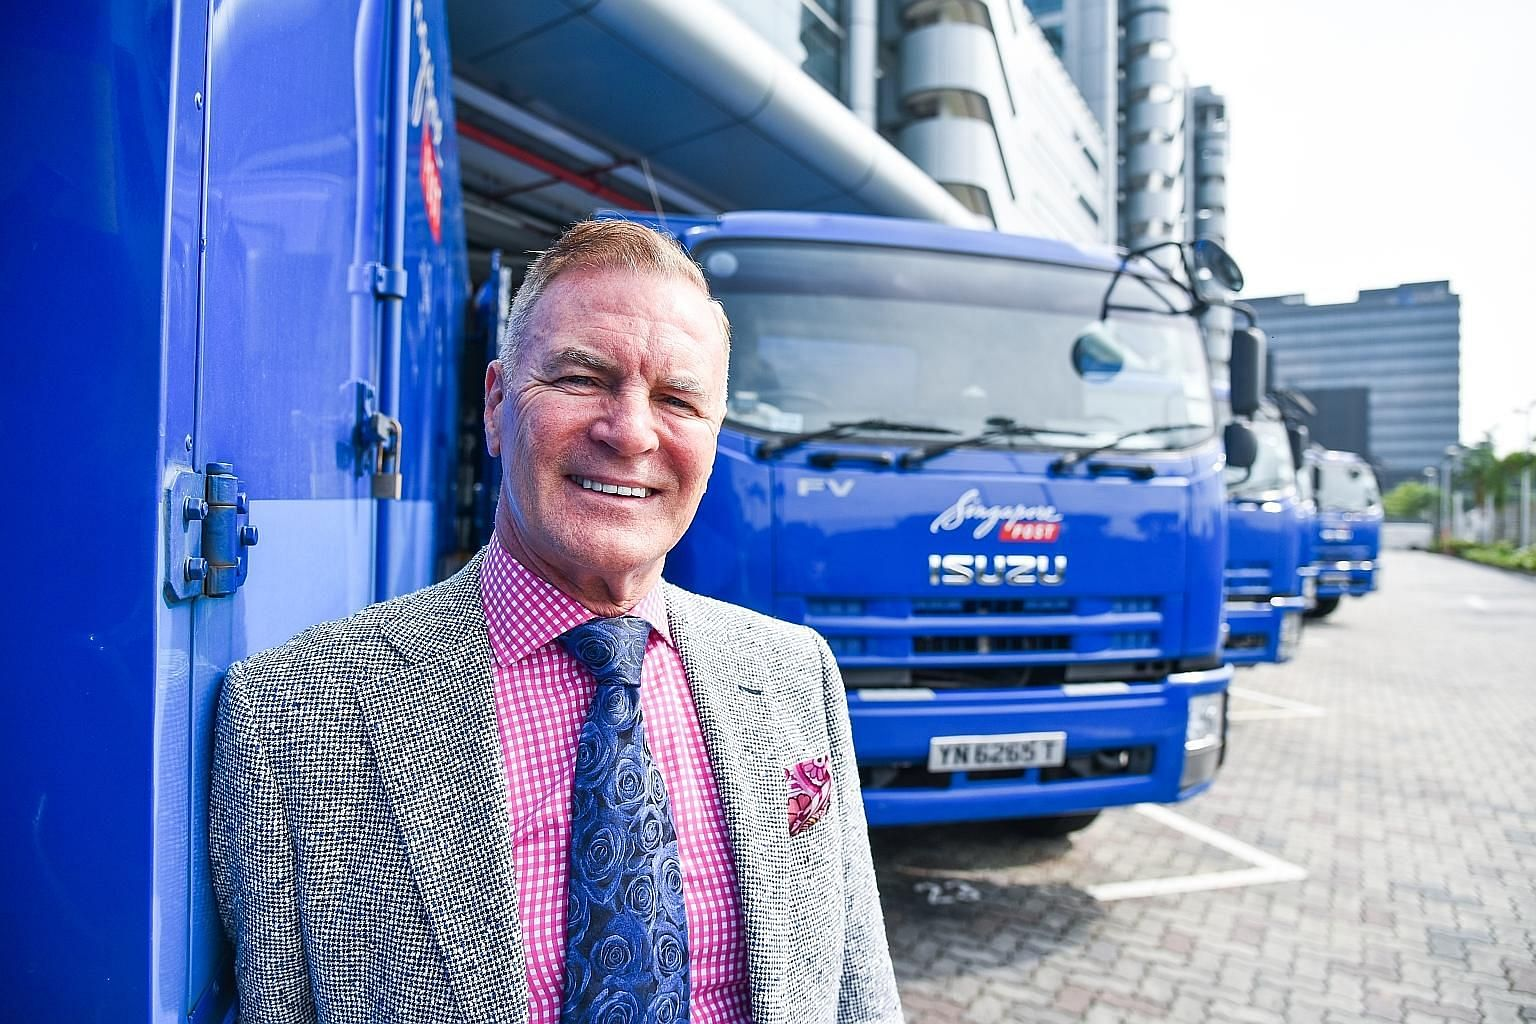 SingPost group chief executive Paul Coutts says the company is still a long way from where it wants to be, but his efforts since he took on the top job last year appear to be paying off. SingPost has seen year-on-year profit growth the last two quart